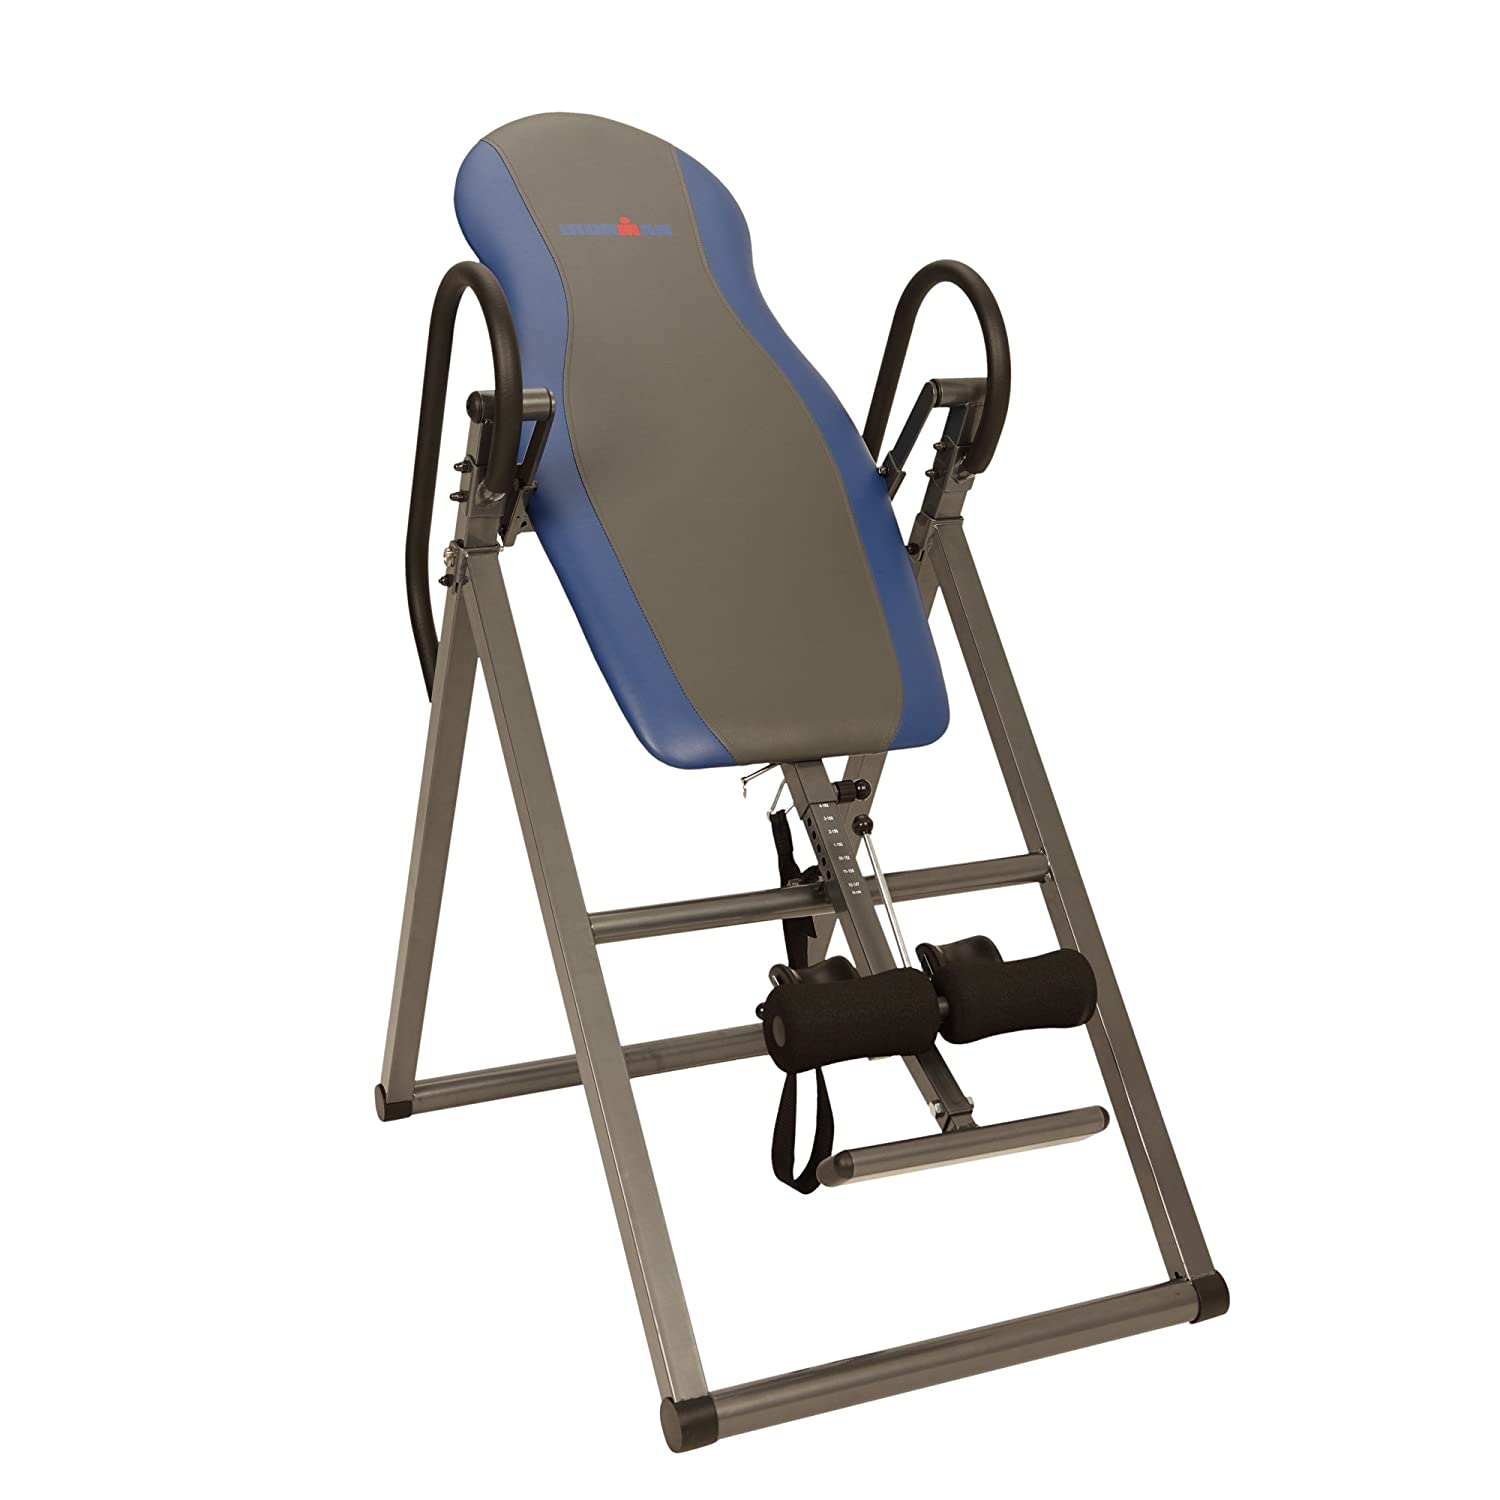 IRONMAN Inversion Table Review